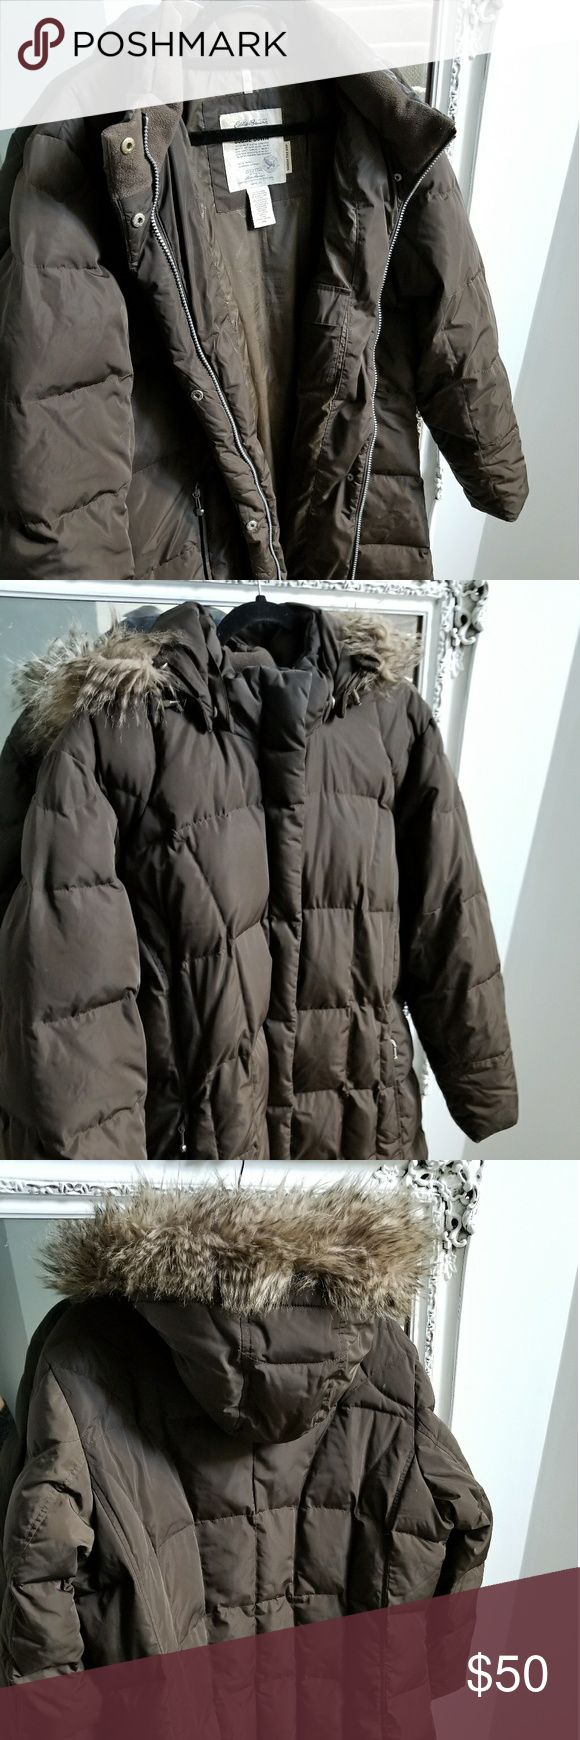 GCU Women's Plus Goose Down Coat Beautiful chocolate brown goose down coat (650 fill) with detachable fur lined hood, fleece lined, zipper and snap closures Eddie Bauer Jackets & Coats Puffers